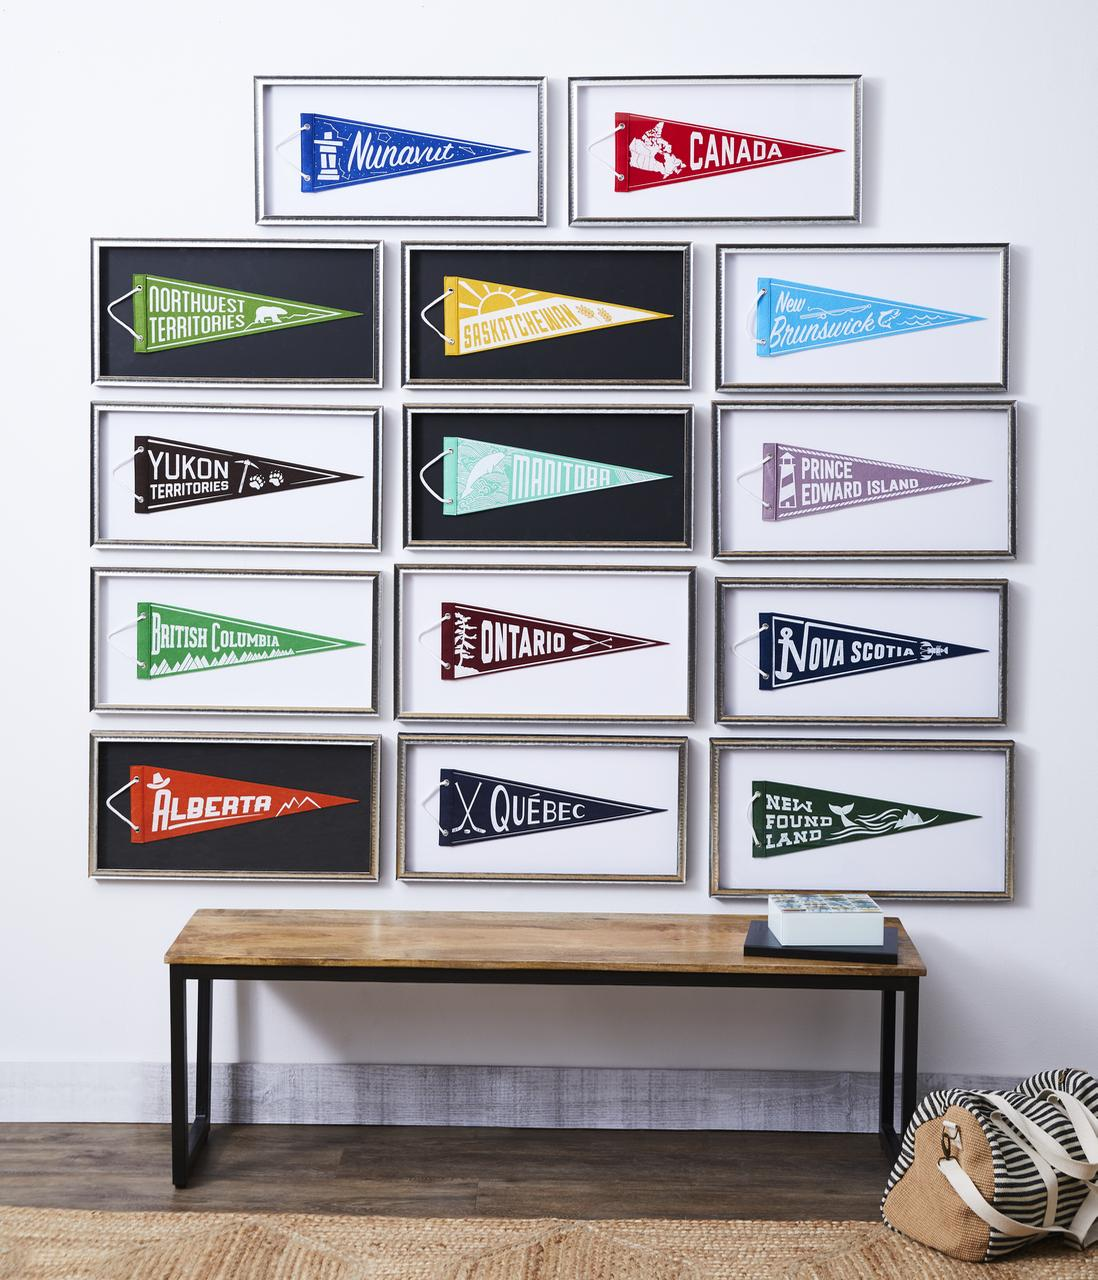 Love pennants! Since there is one for every province and territory I decided to hang them in a grid in a loosely West to East arrangement. They aren't all in identical frames though, so that made spacing a challenge. I think the unevenness gives it a more collected look.